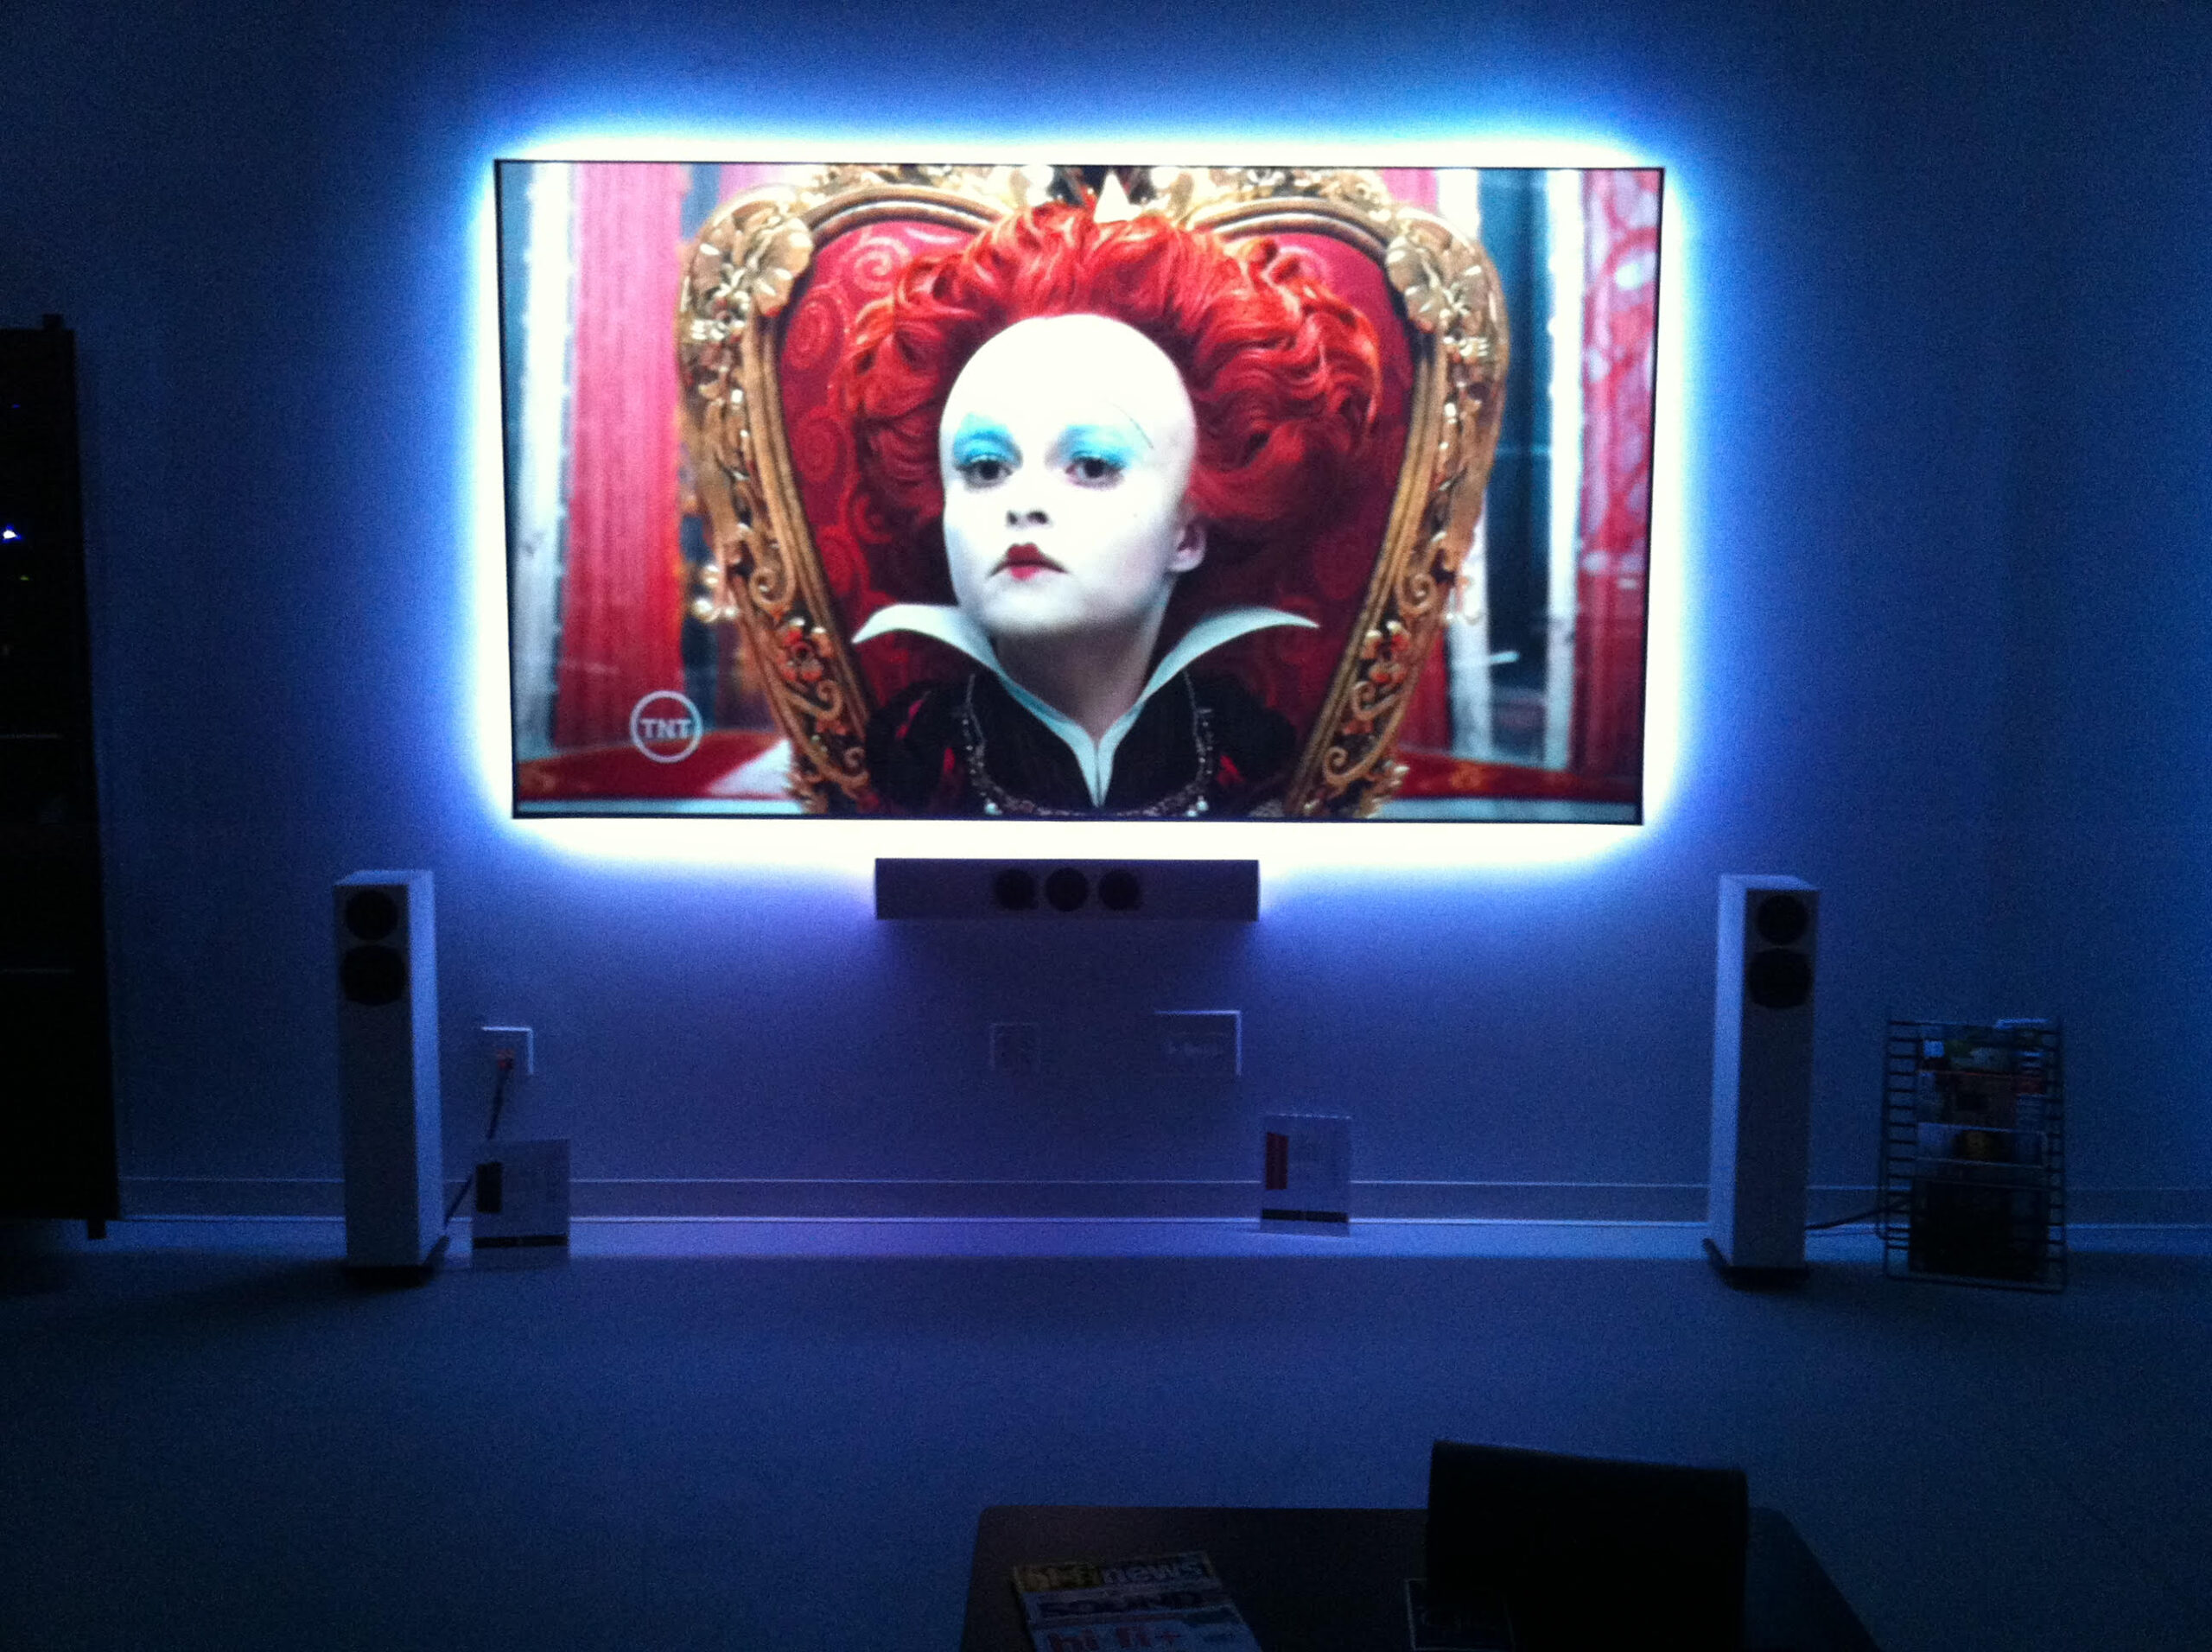 Home entertainment large Samsung framed TV and loudspeakers sound system